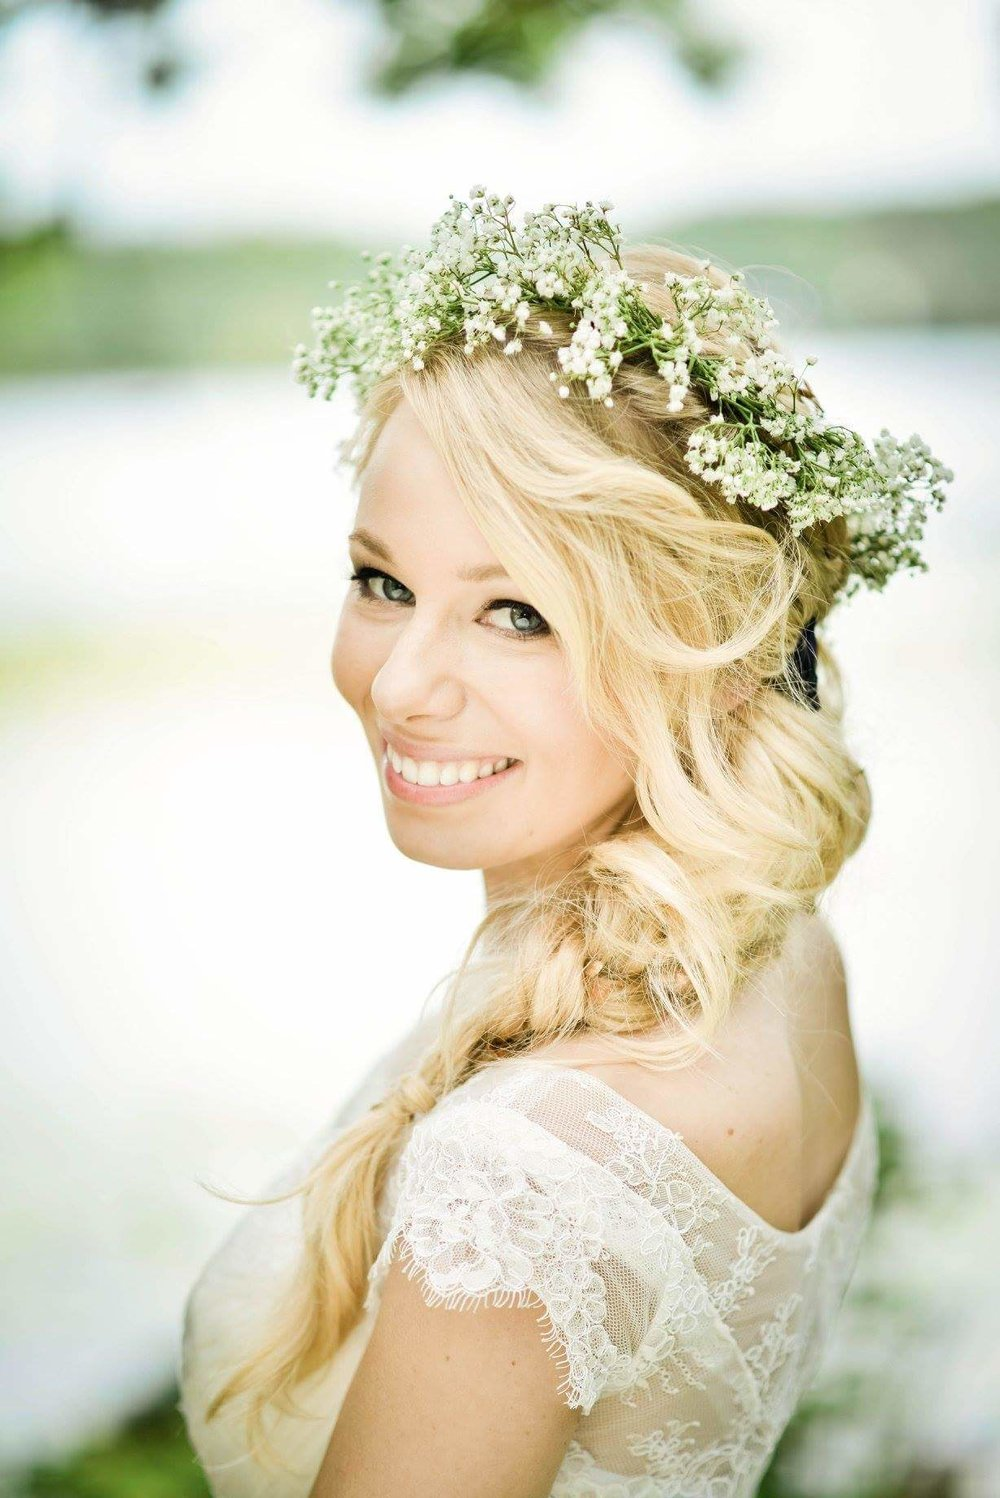 Gretchen Burkhart Wedding Photographer | Skin Mpls | blonde bride with side braid